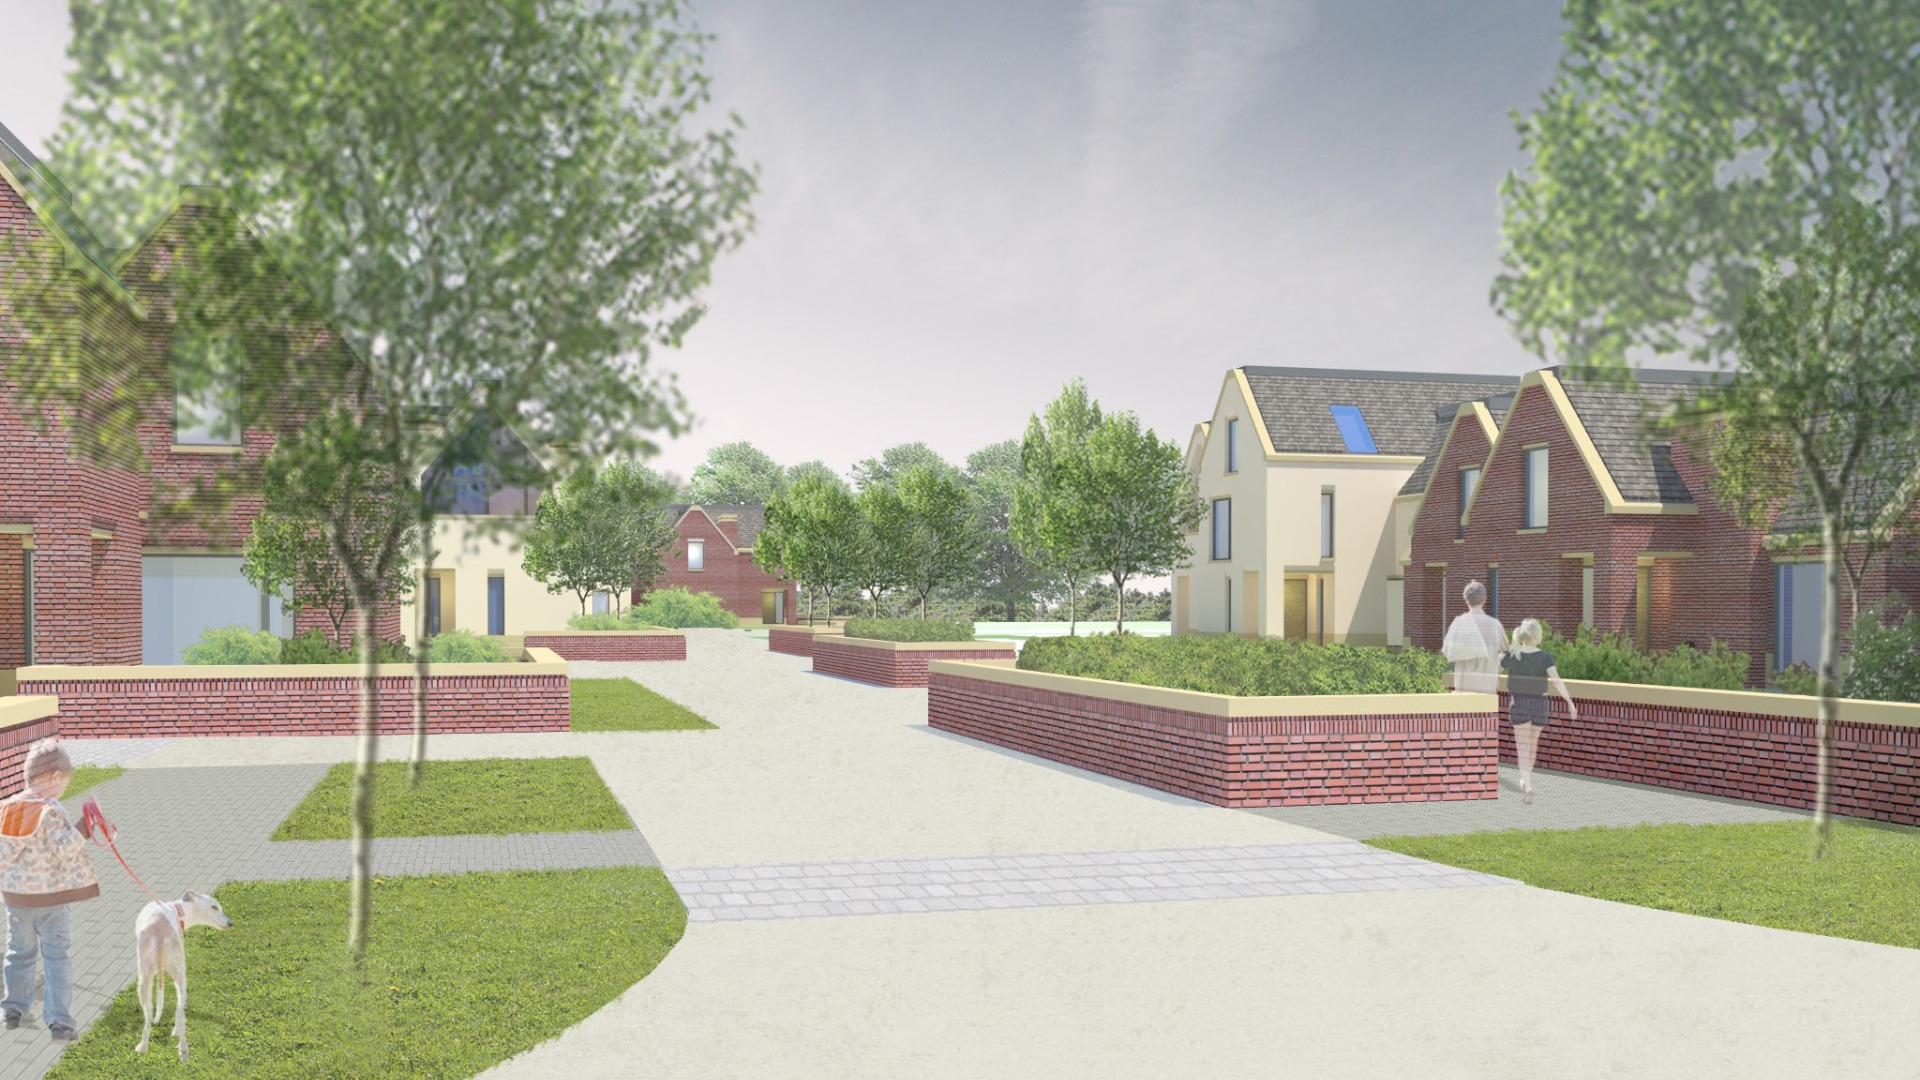 Sunnydale housing scheme, Little Eccleston - a Stanton Andrews project